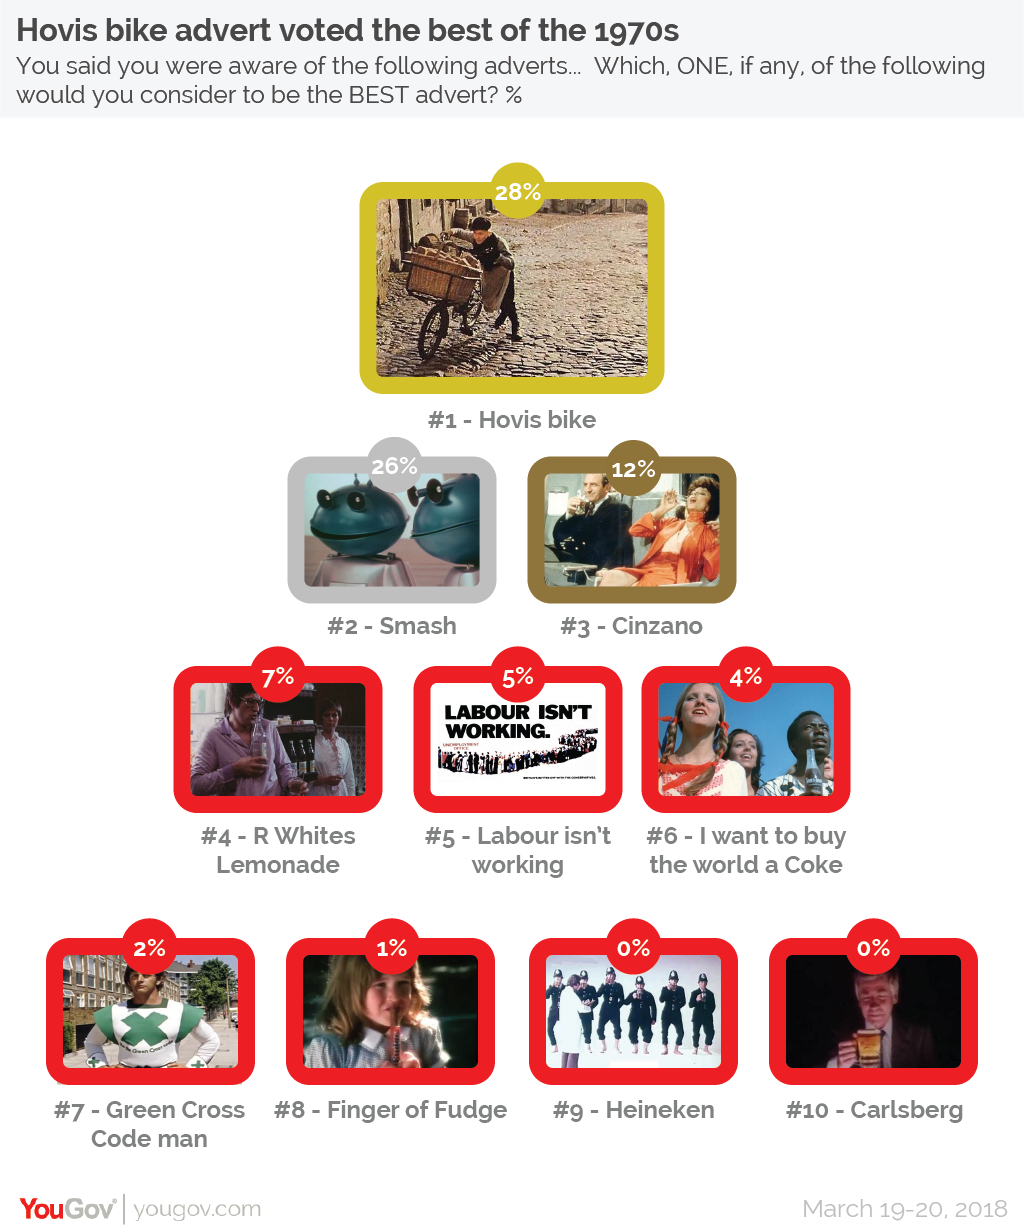 YouGov | The most seen and best liked ads of the past five decades